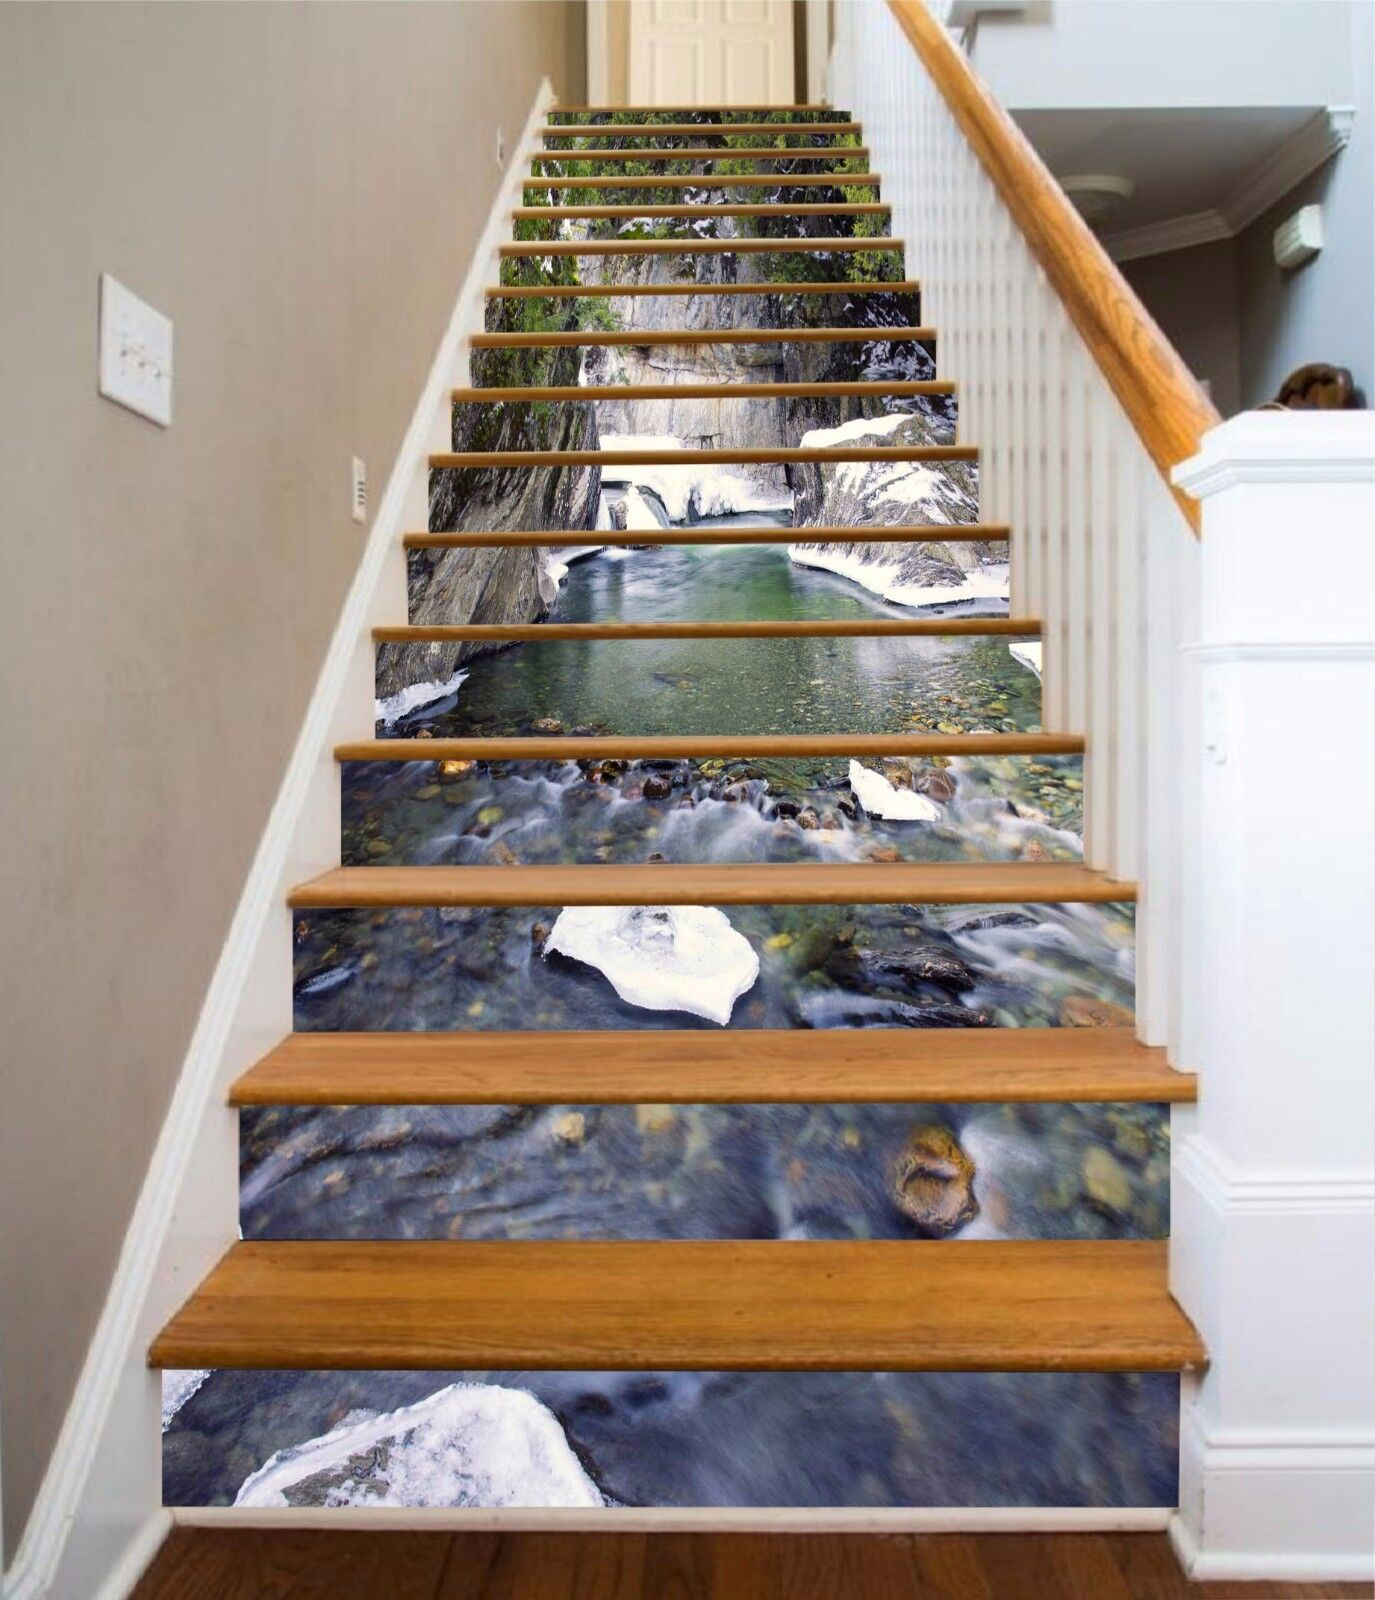 3D Stone river 7 Stair Risers Decoration Photo Mural Vinyl Decal Wallpaper UK